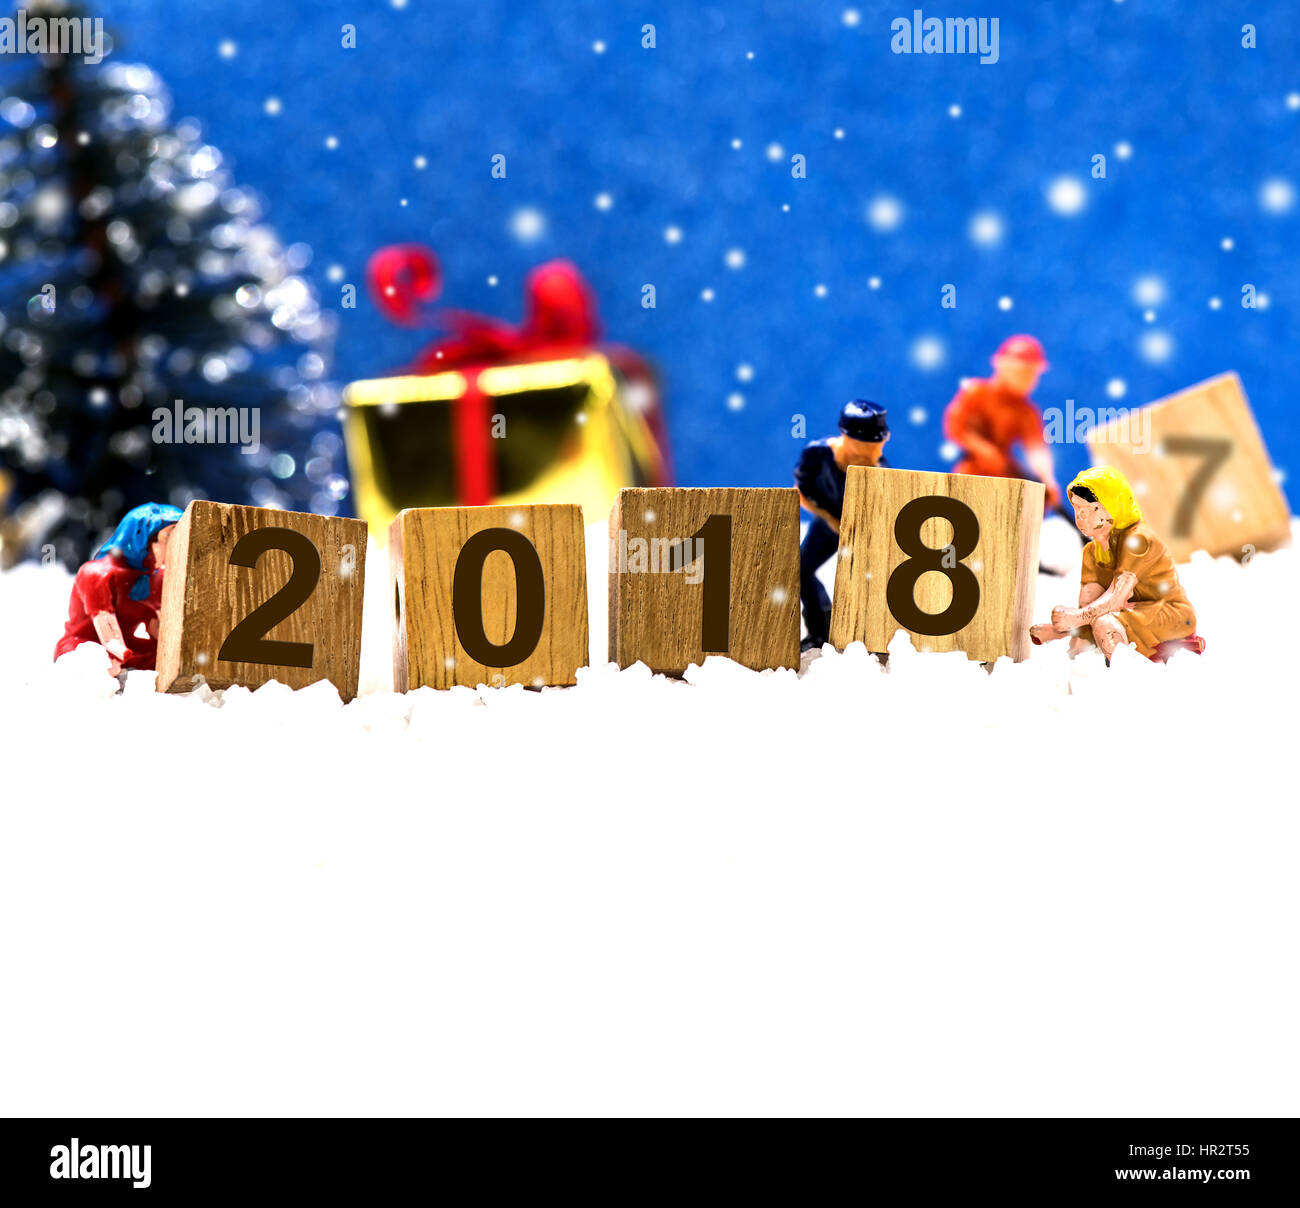 Merry Christmas and Happy New Year 2018, winter season Stock Photo ...